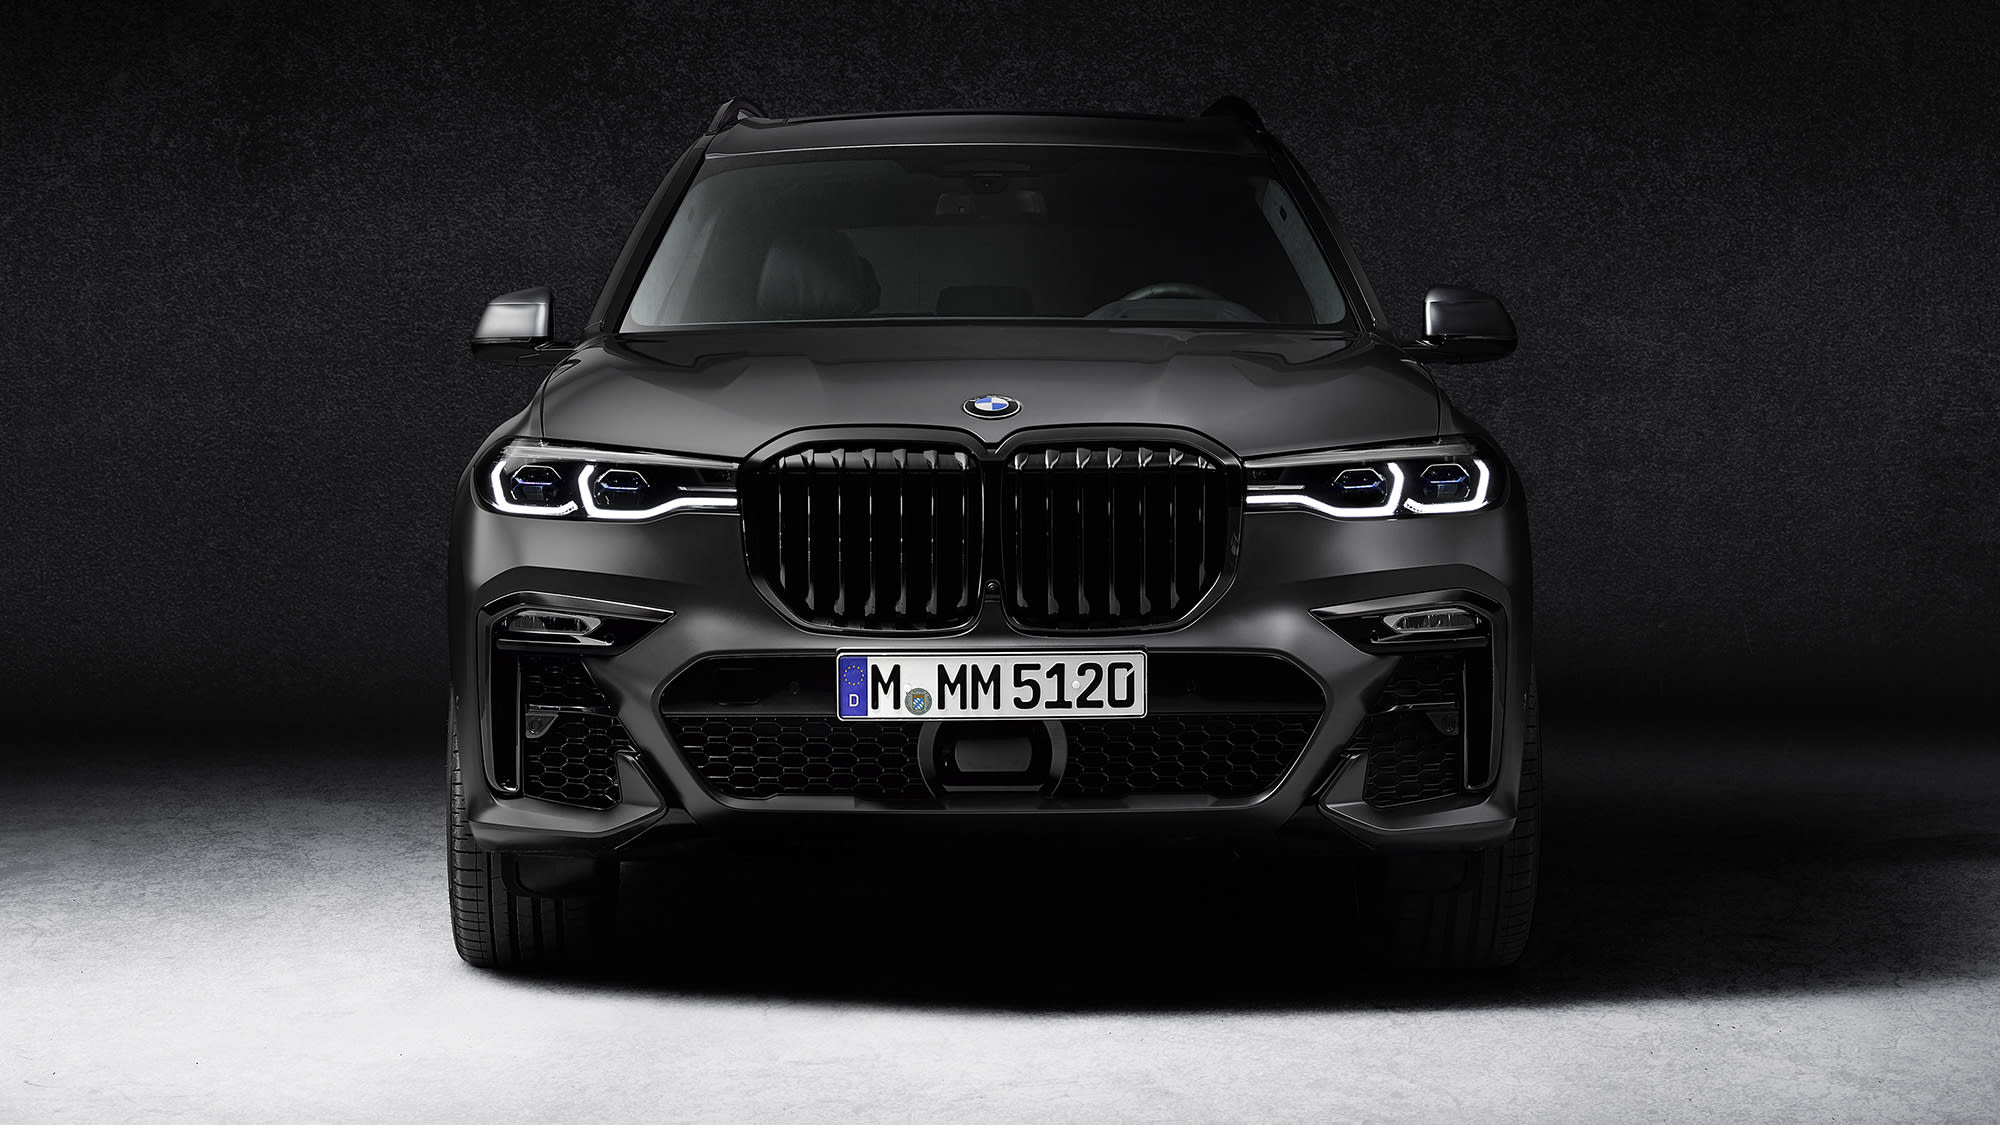 2021 Bmw X7 Dark Shadow Edition Revealed Update Australian Pricing Confirmed Arrives March 2021 Caradvice